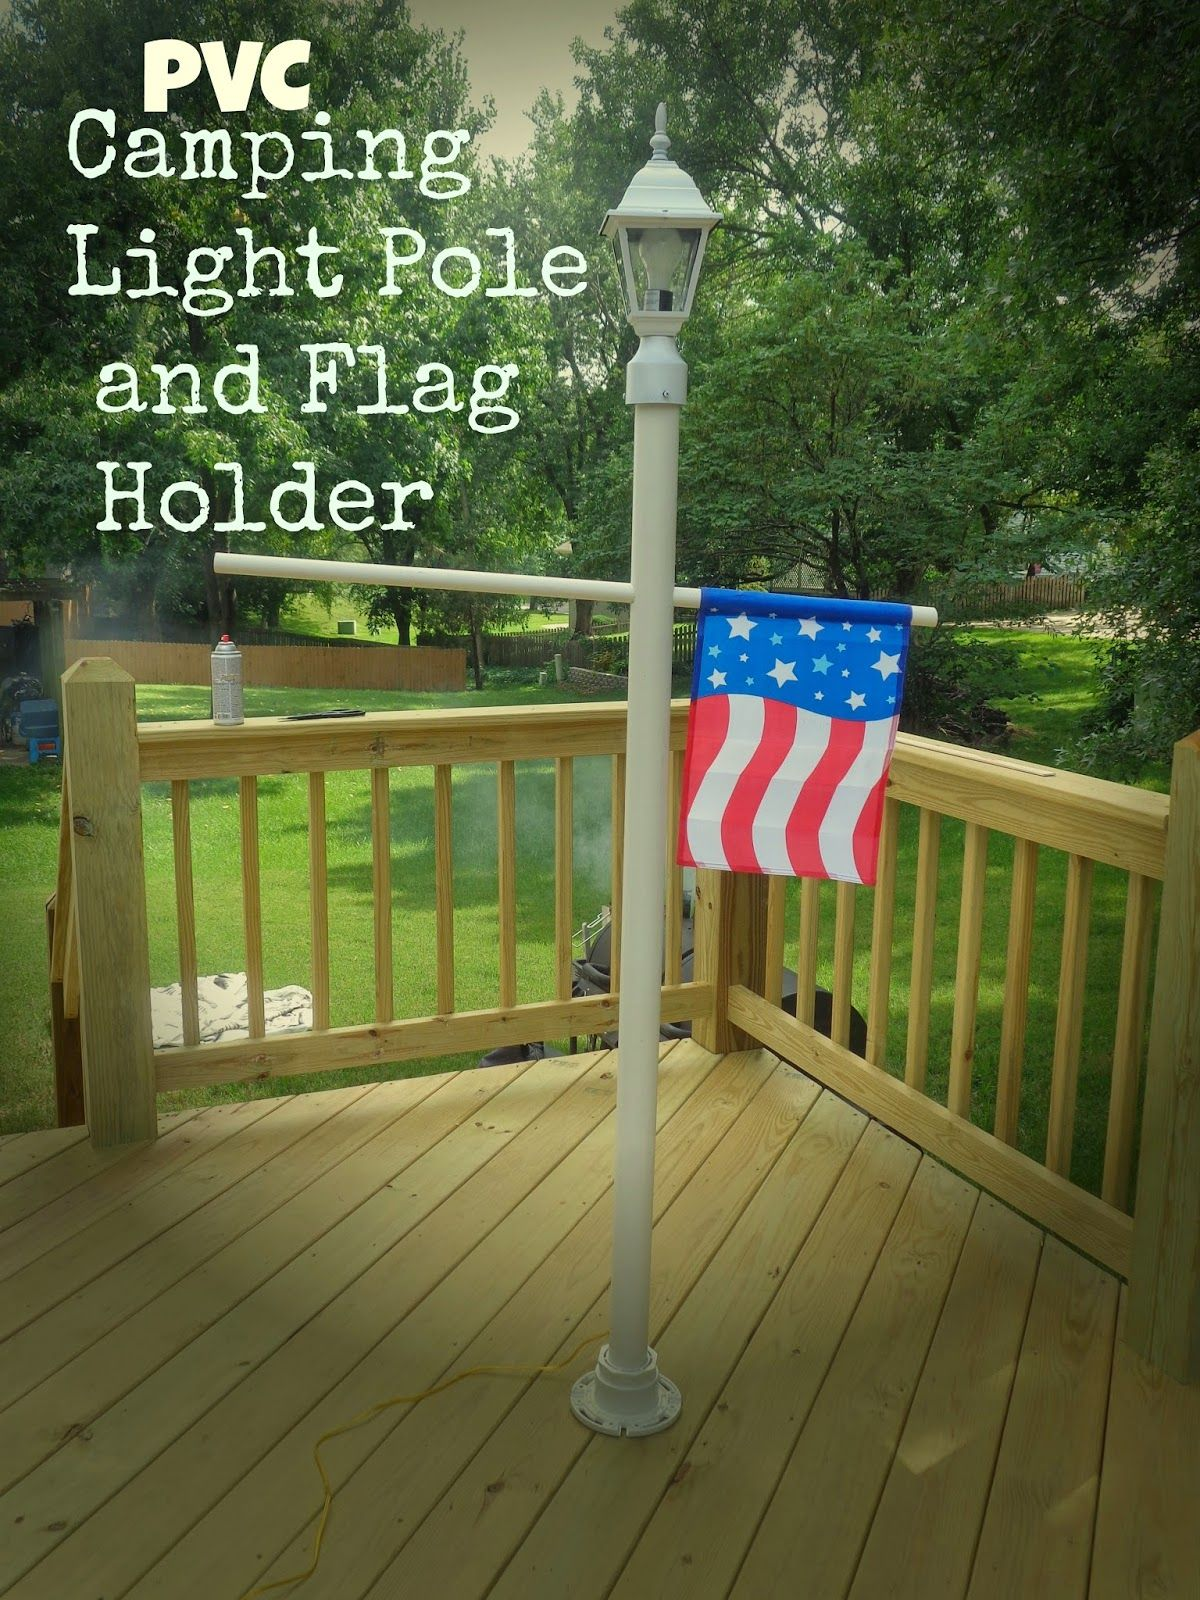 Its My Life Weekend Project A PVC Camping Light Pole And Flag Holder